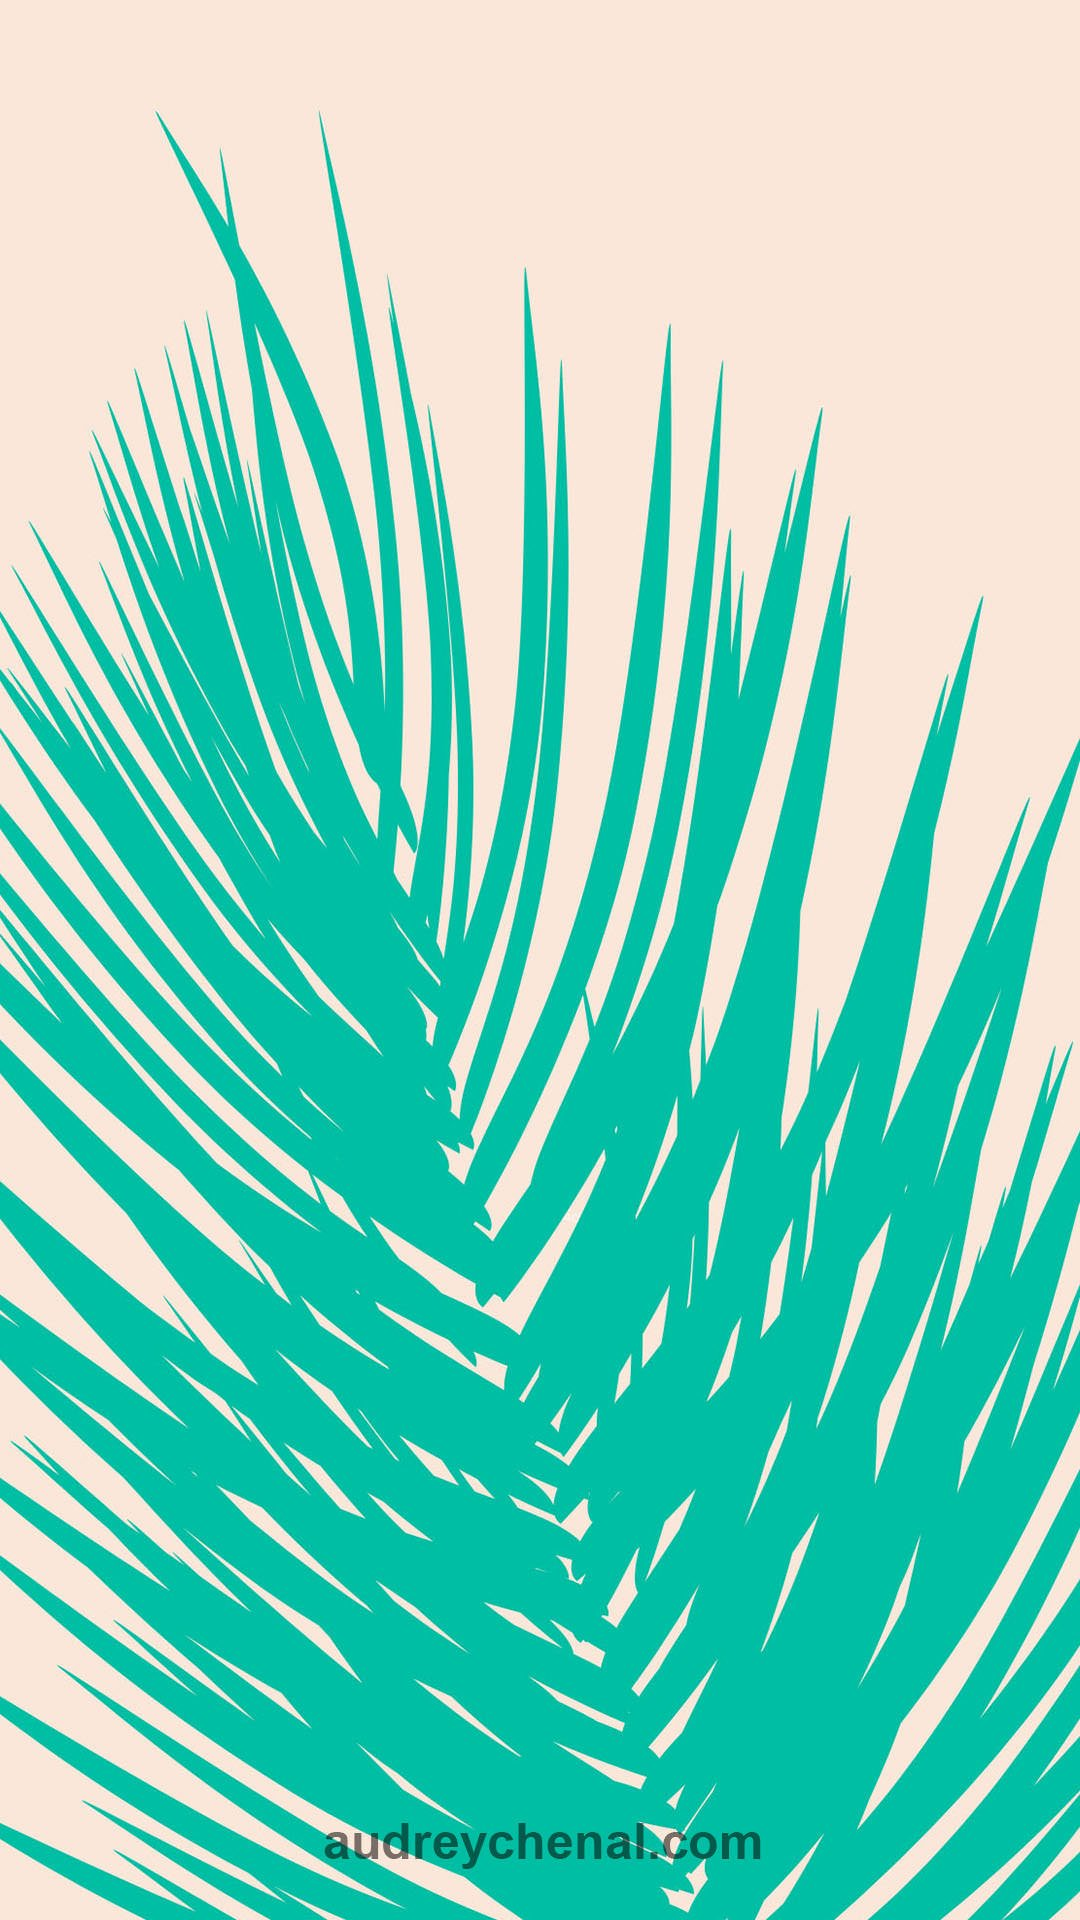 wallpaper Modern summer turquoise palm tree leaves on blush pink by Audrey Chenal